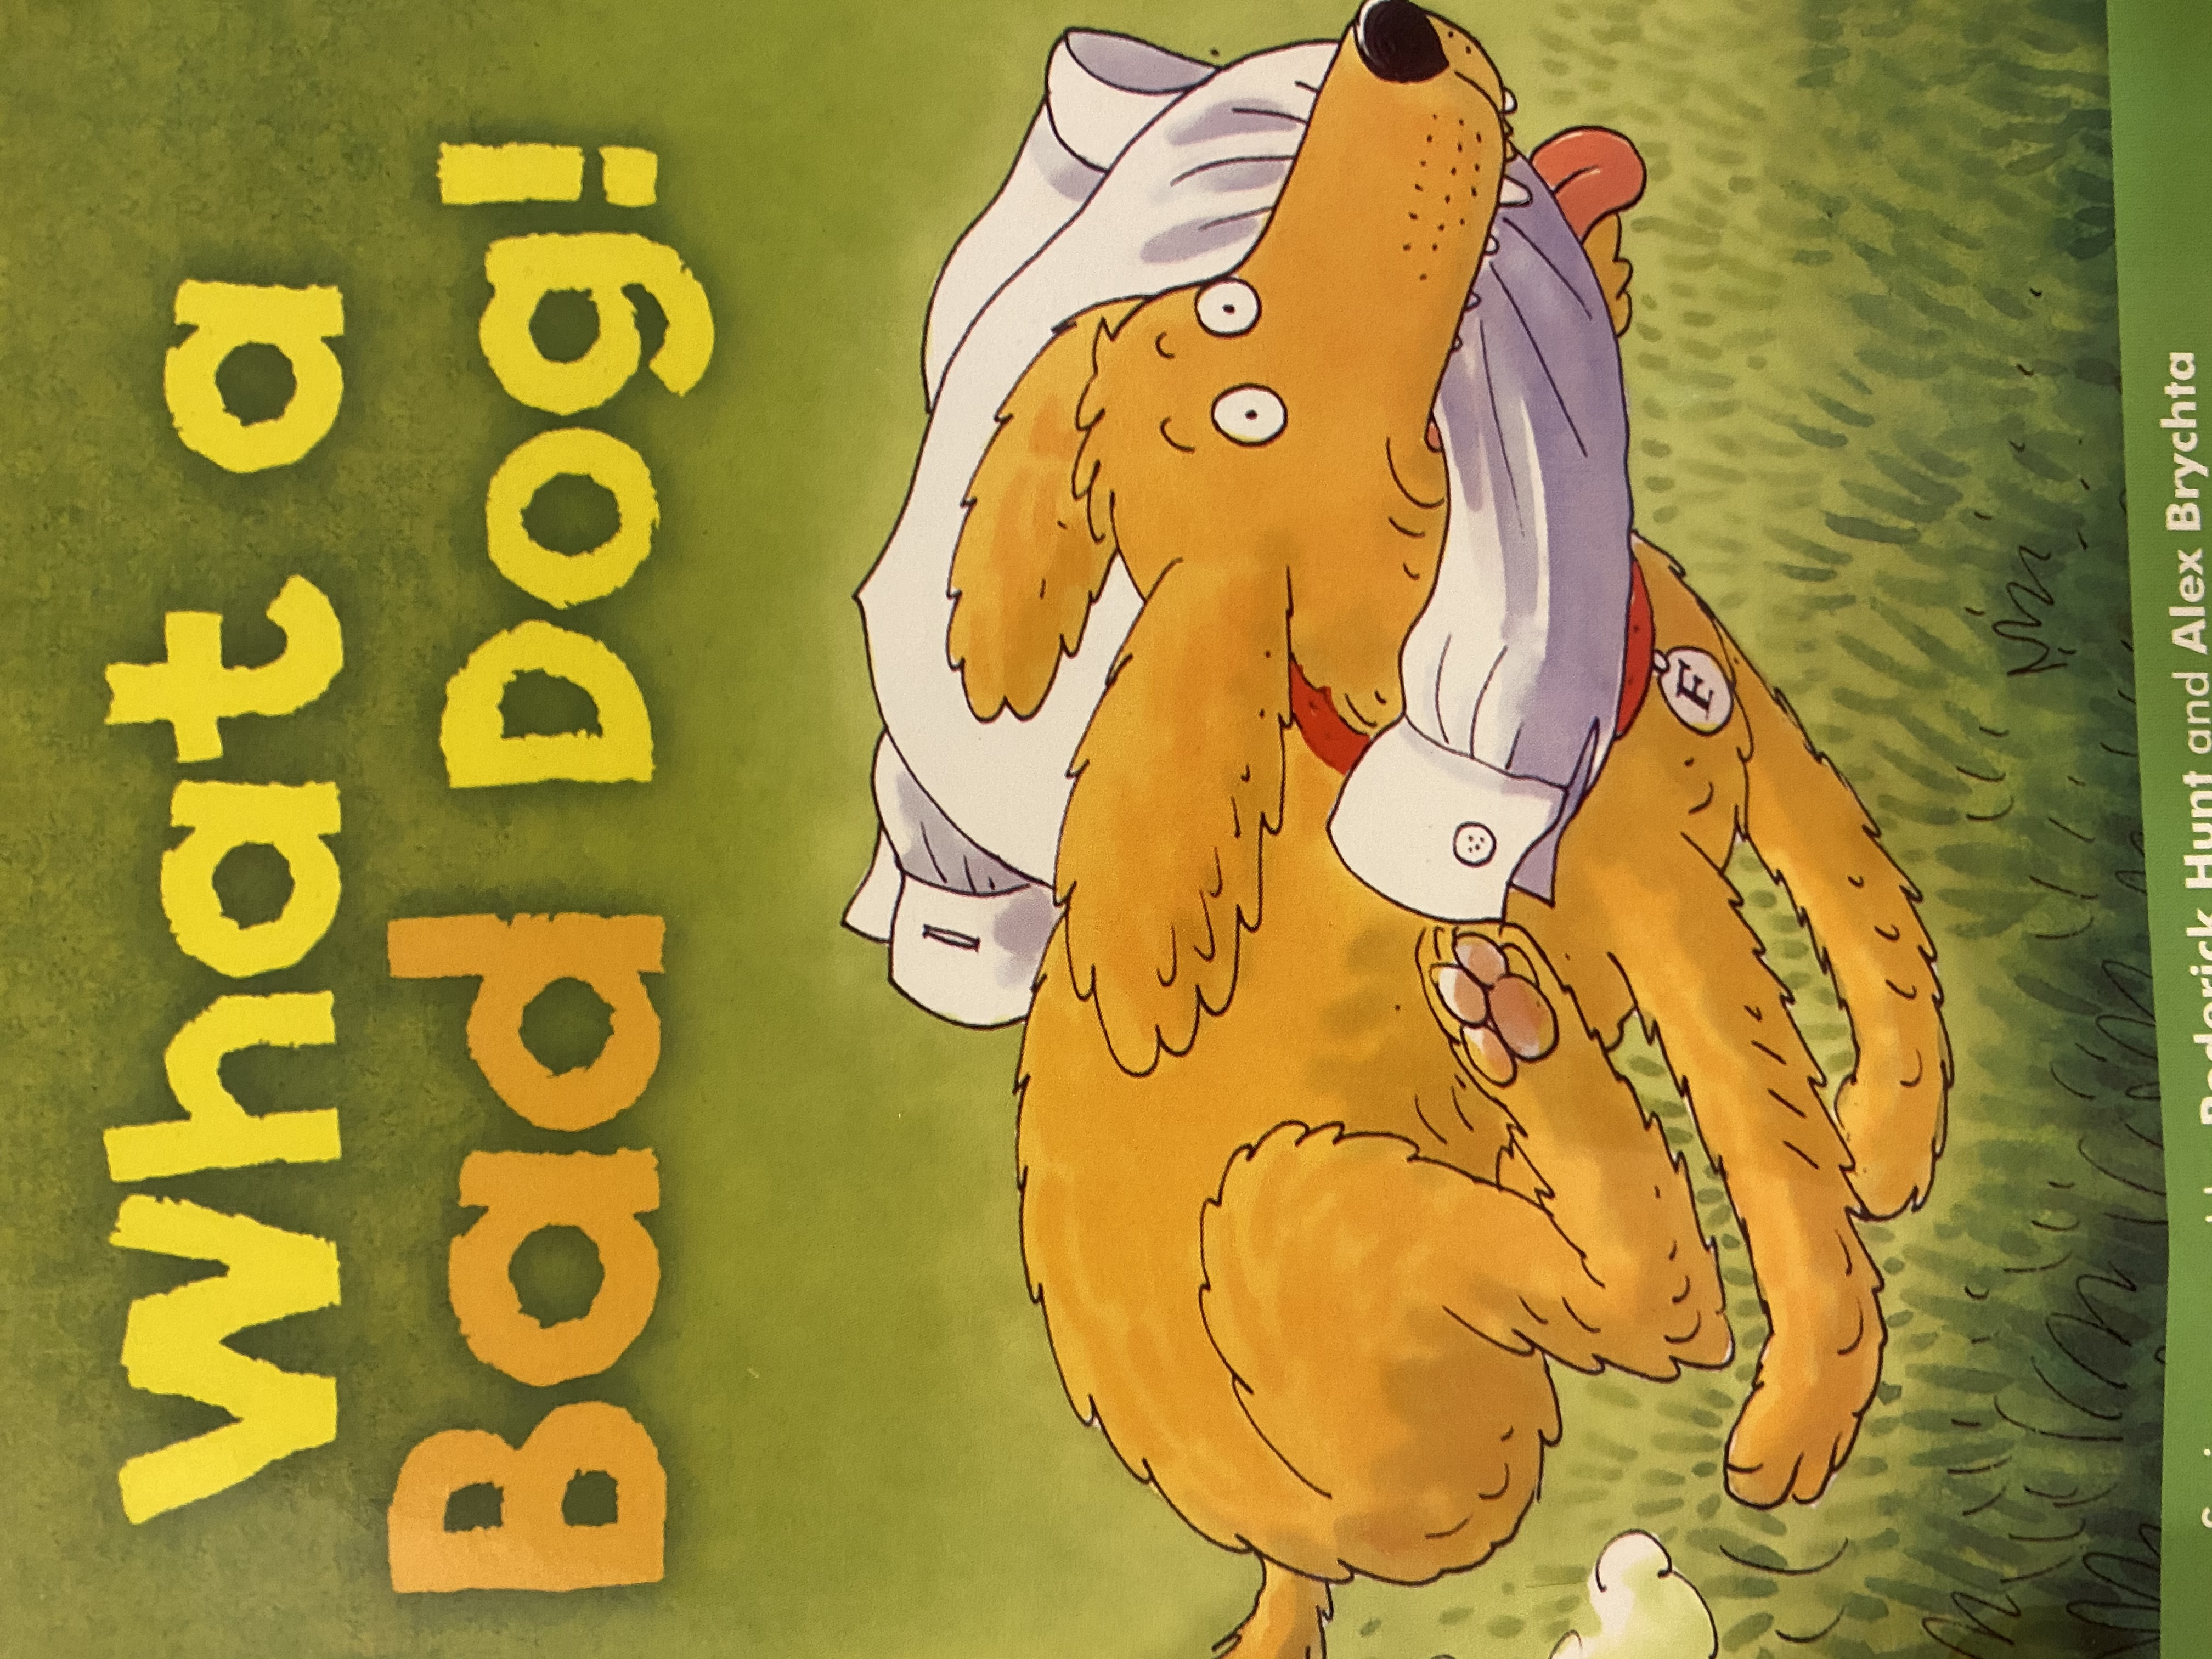 S2-003/ What a bad dog/ Oxford reading tree